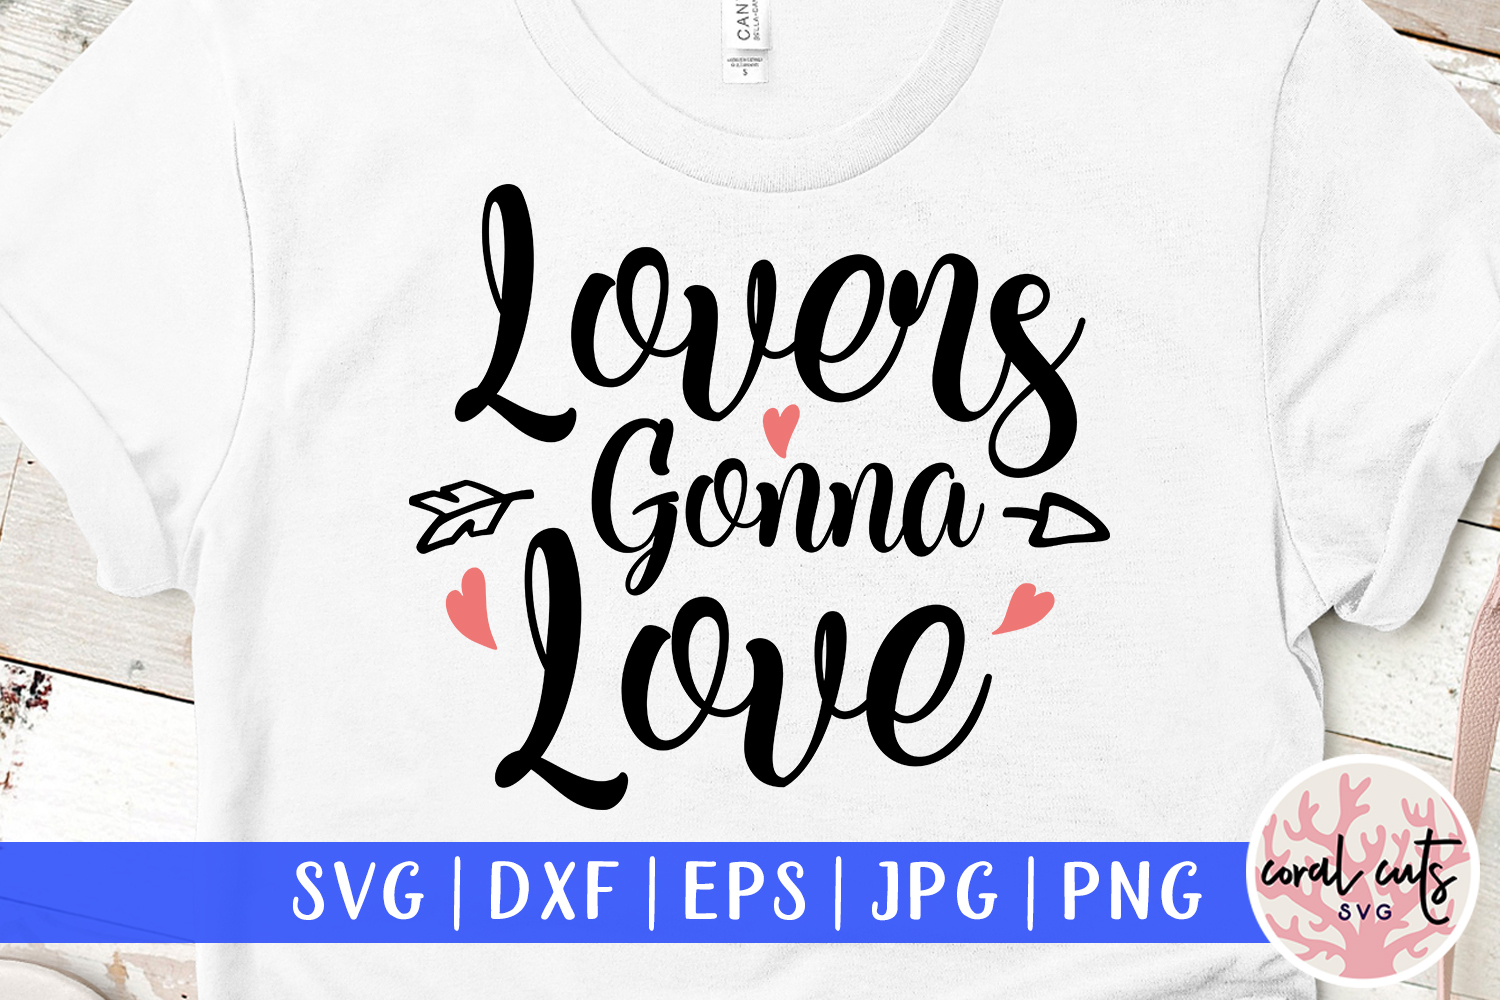 Download Free Lovers Gonna Love Graphic By Coralcutssvg Creative Fabrica for Cricut Explore, Silhouette and other cutting machines.